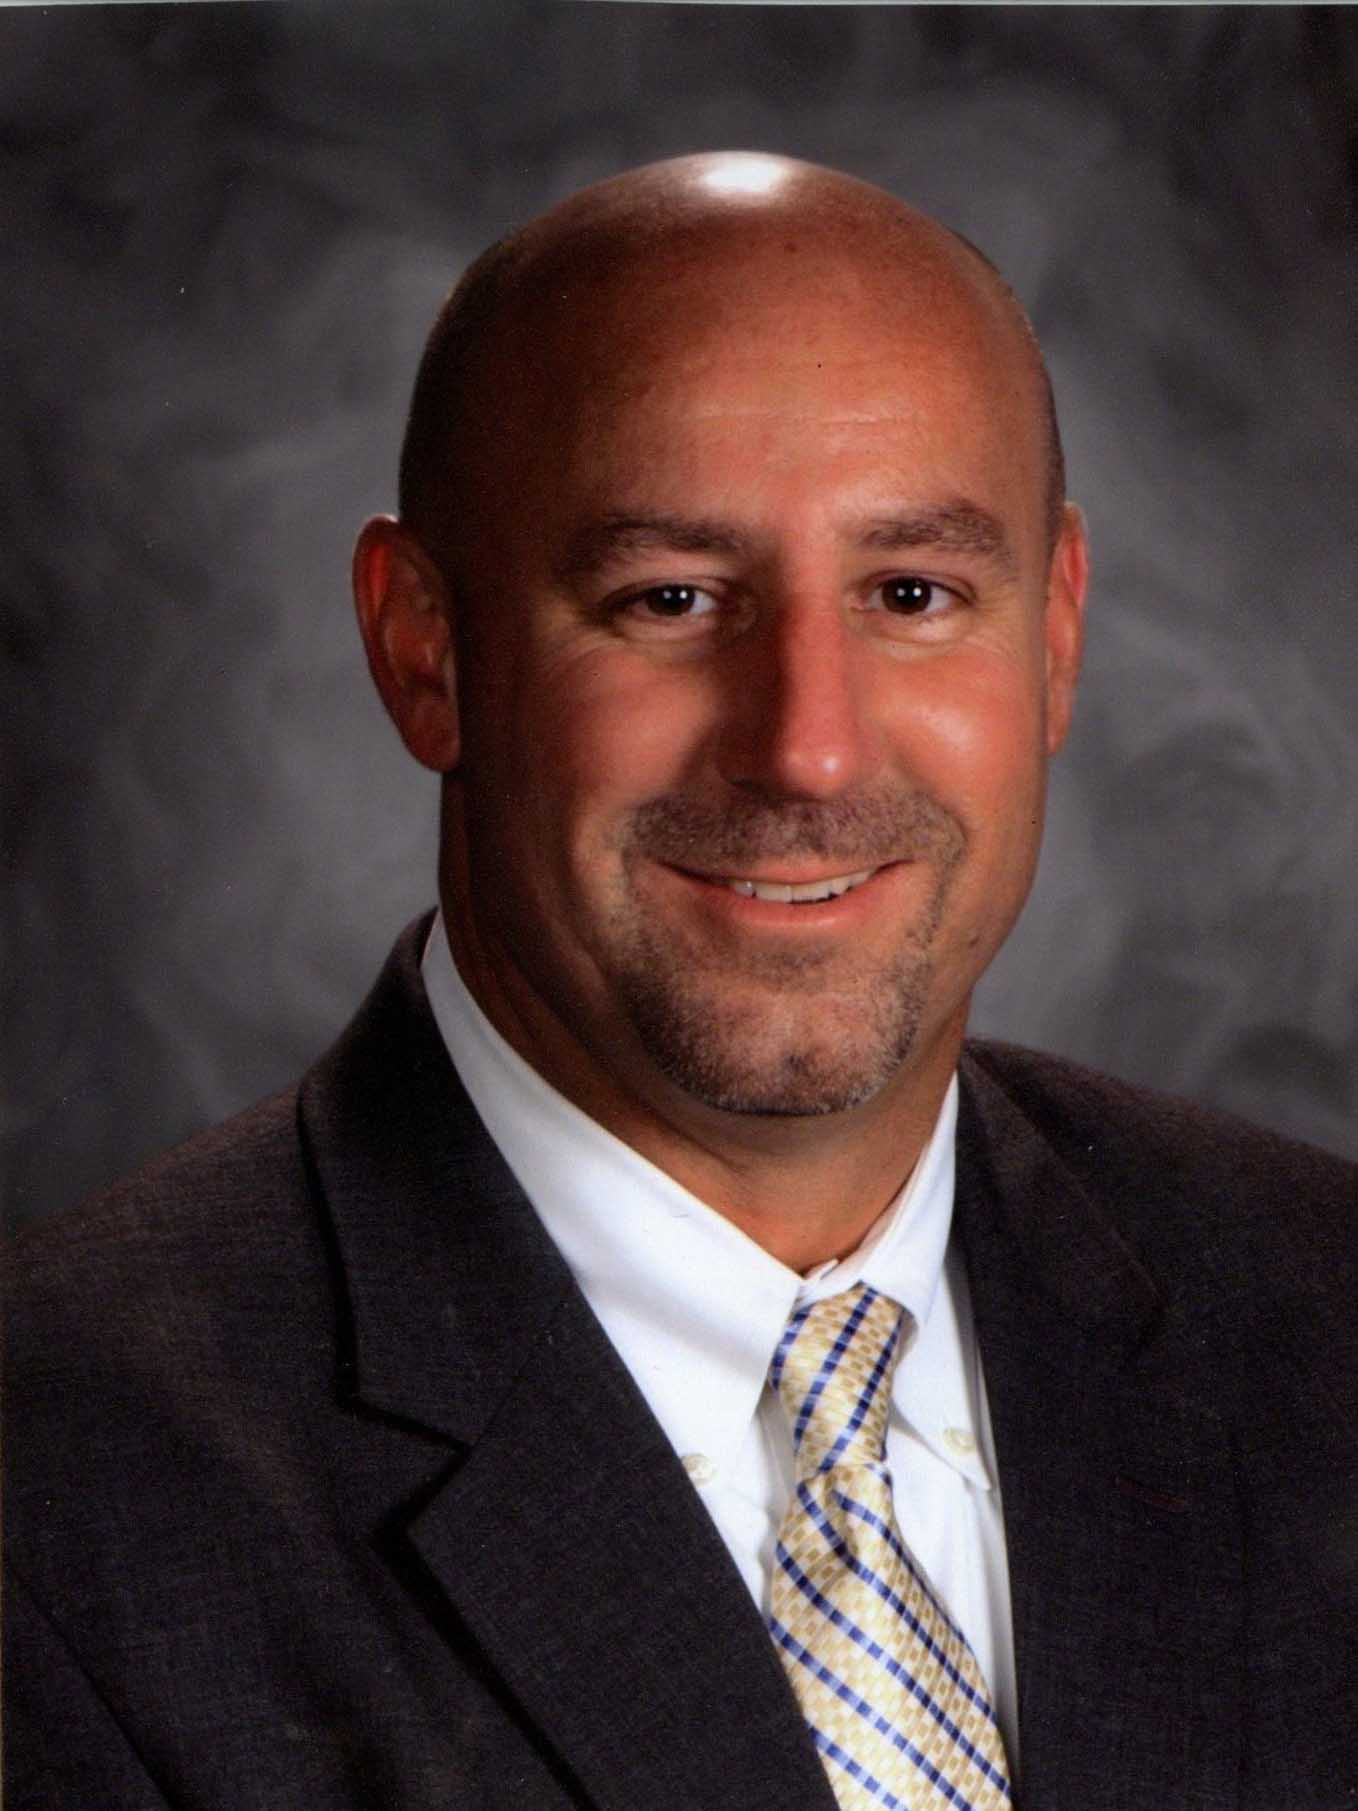 Dr. Tom Maglisceau, Principal, Rockwall-Heath High School, Rockwall ISD